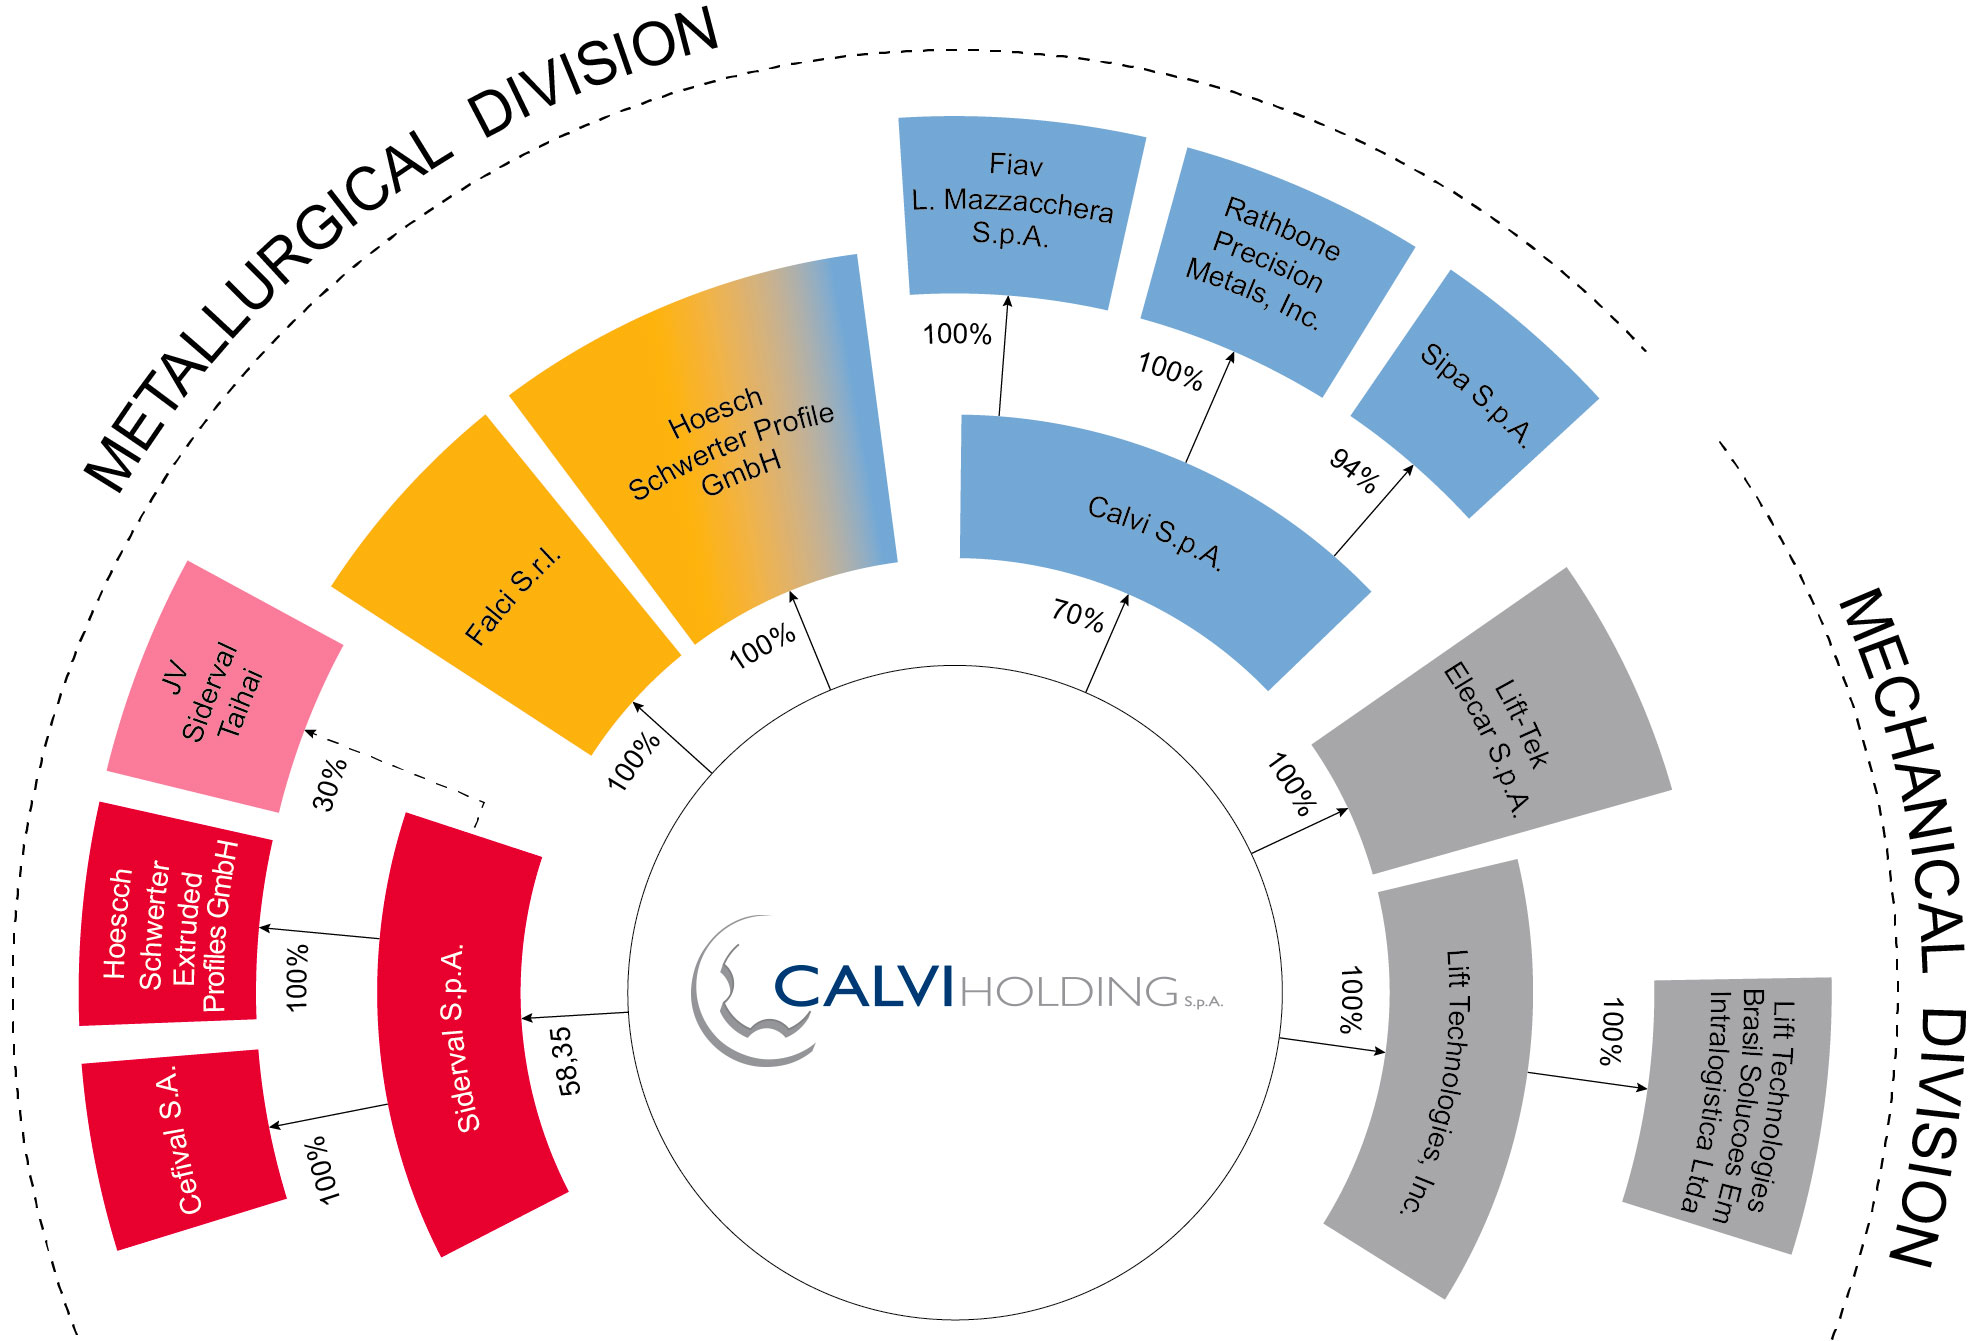 Calvi Holding S.p.A. includes 10 companies operating in two major industries – metallurgy and mechanics